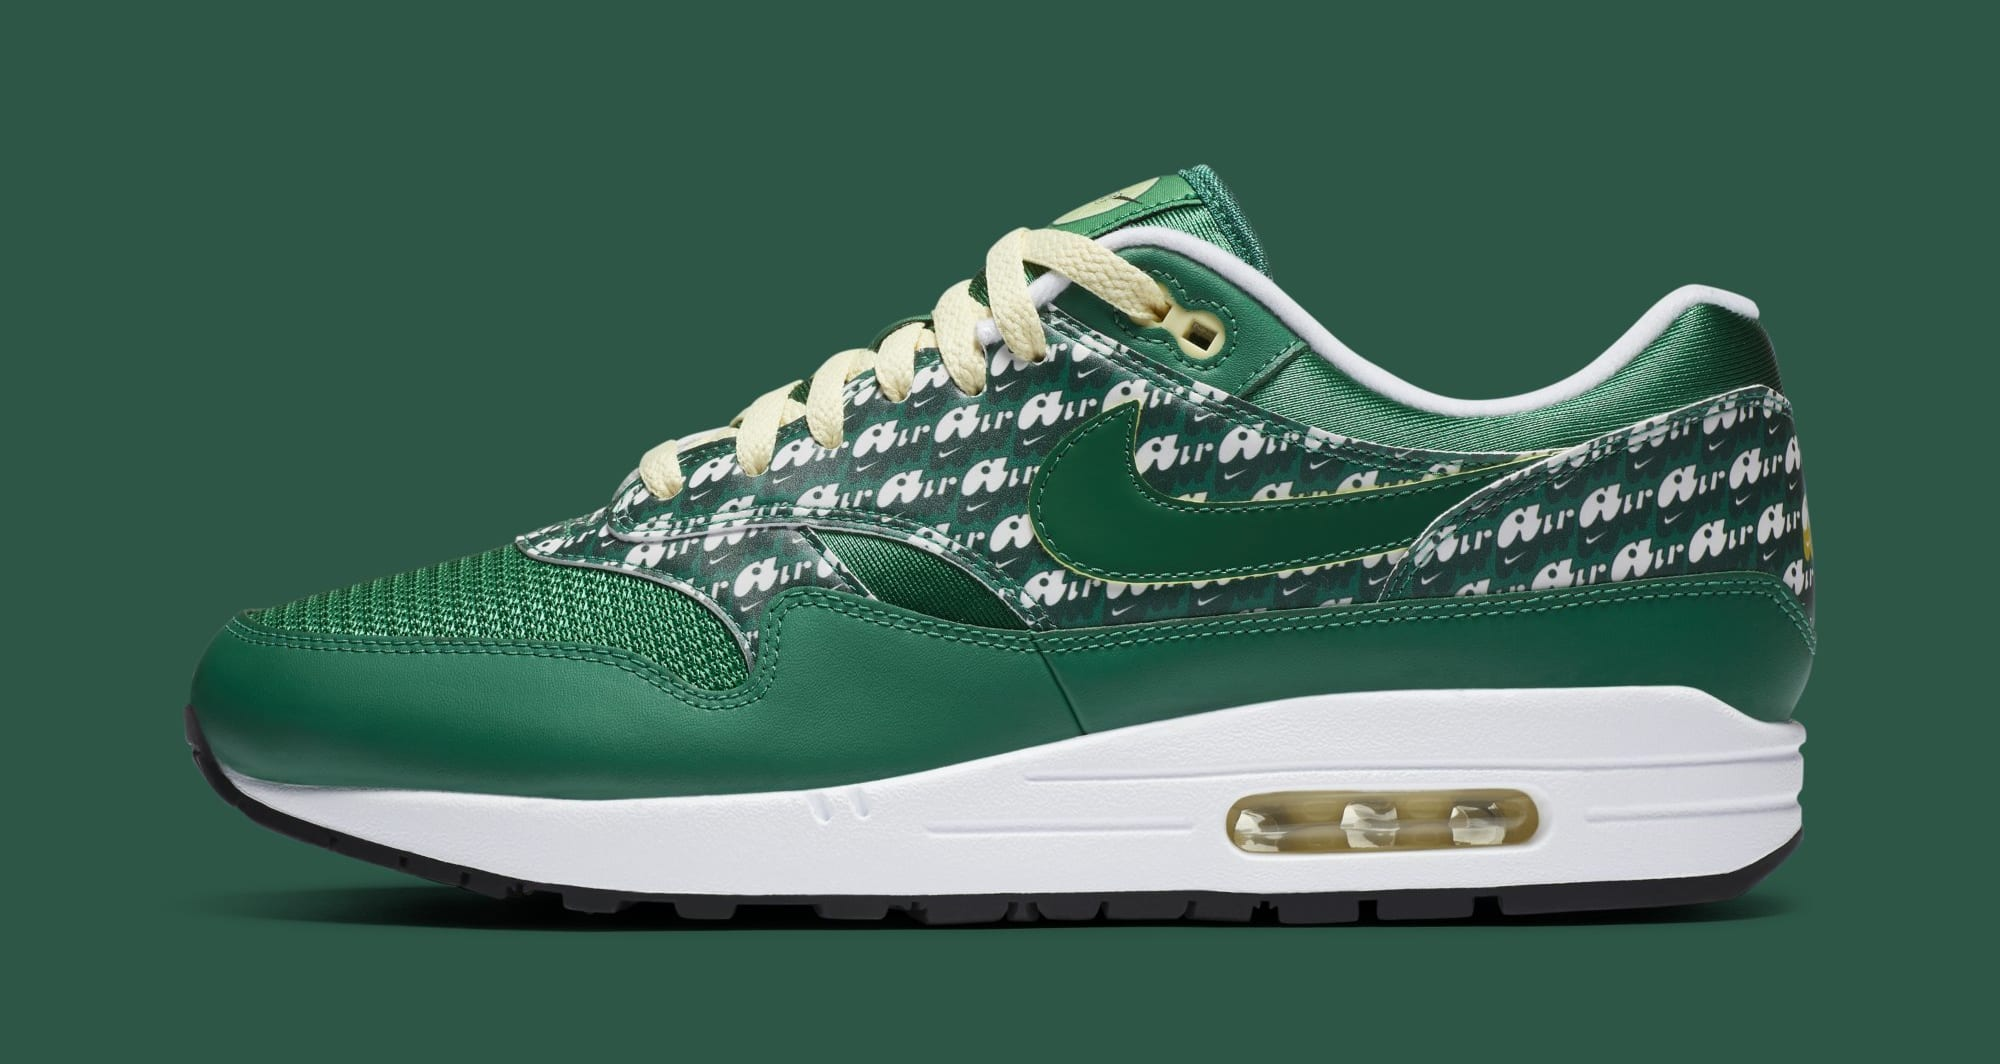 Nike Air Max 1 Premium 'Pine Green' CJ0609-300 Lateral